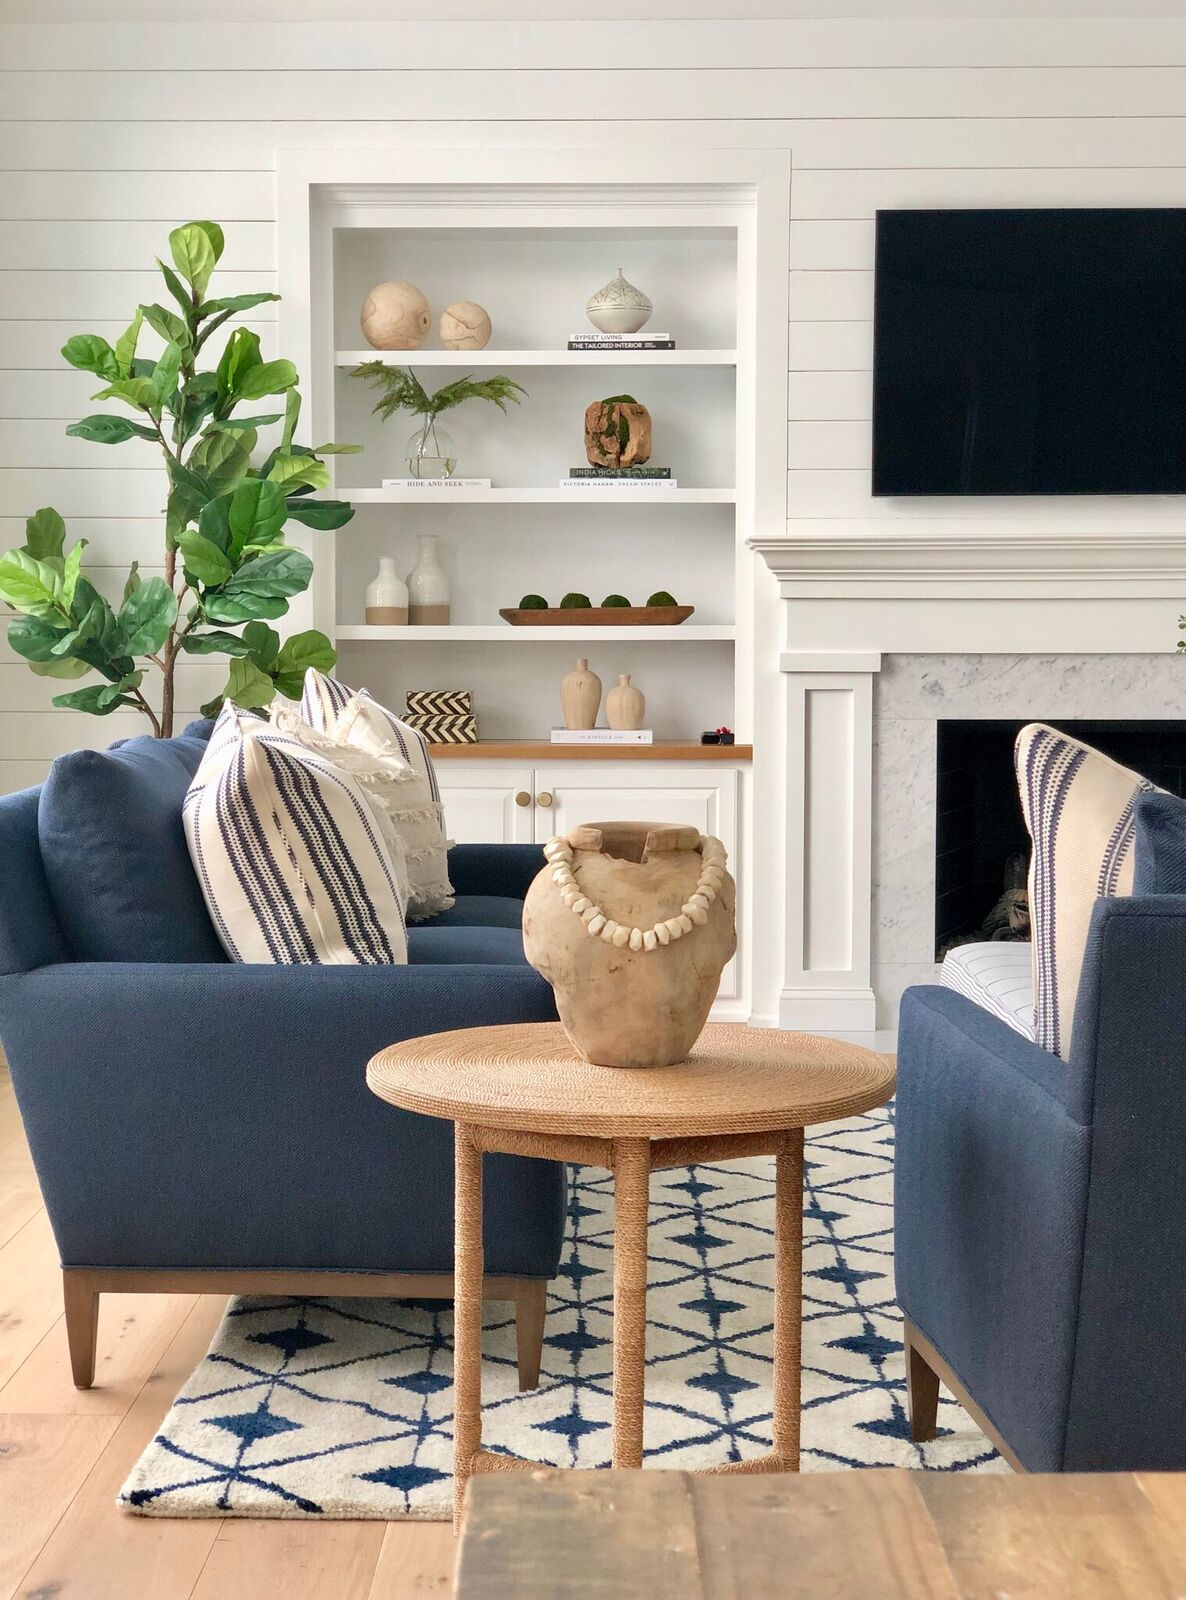 stephanie-kraus-designs-mainline-pa-family-room-project-after-styled-bookshelf.jpg